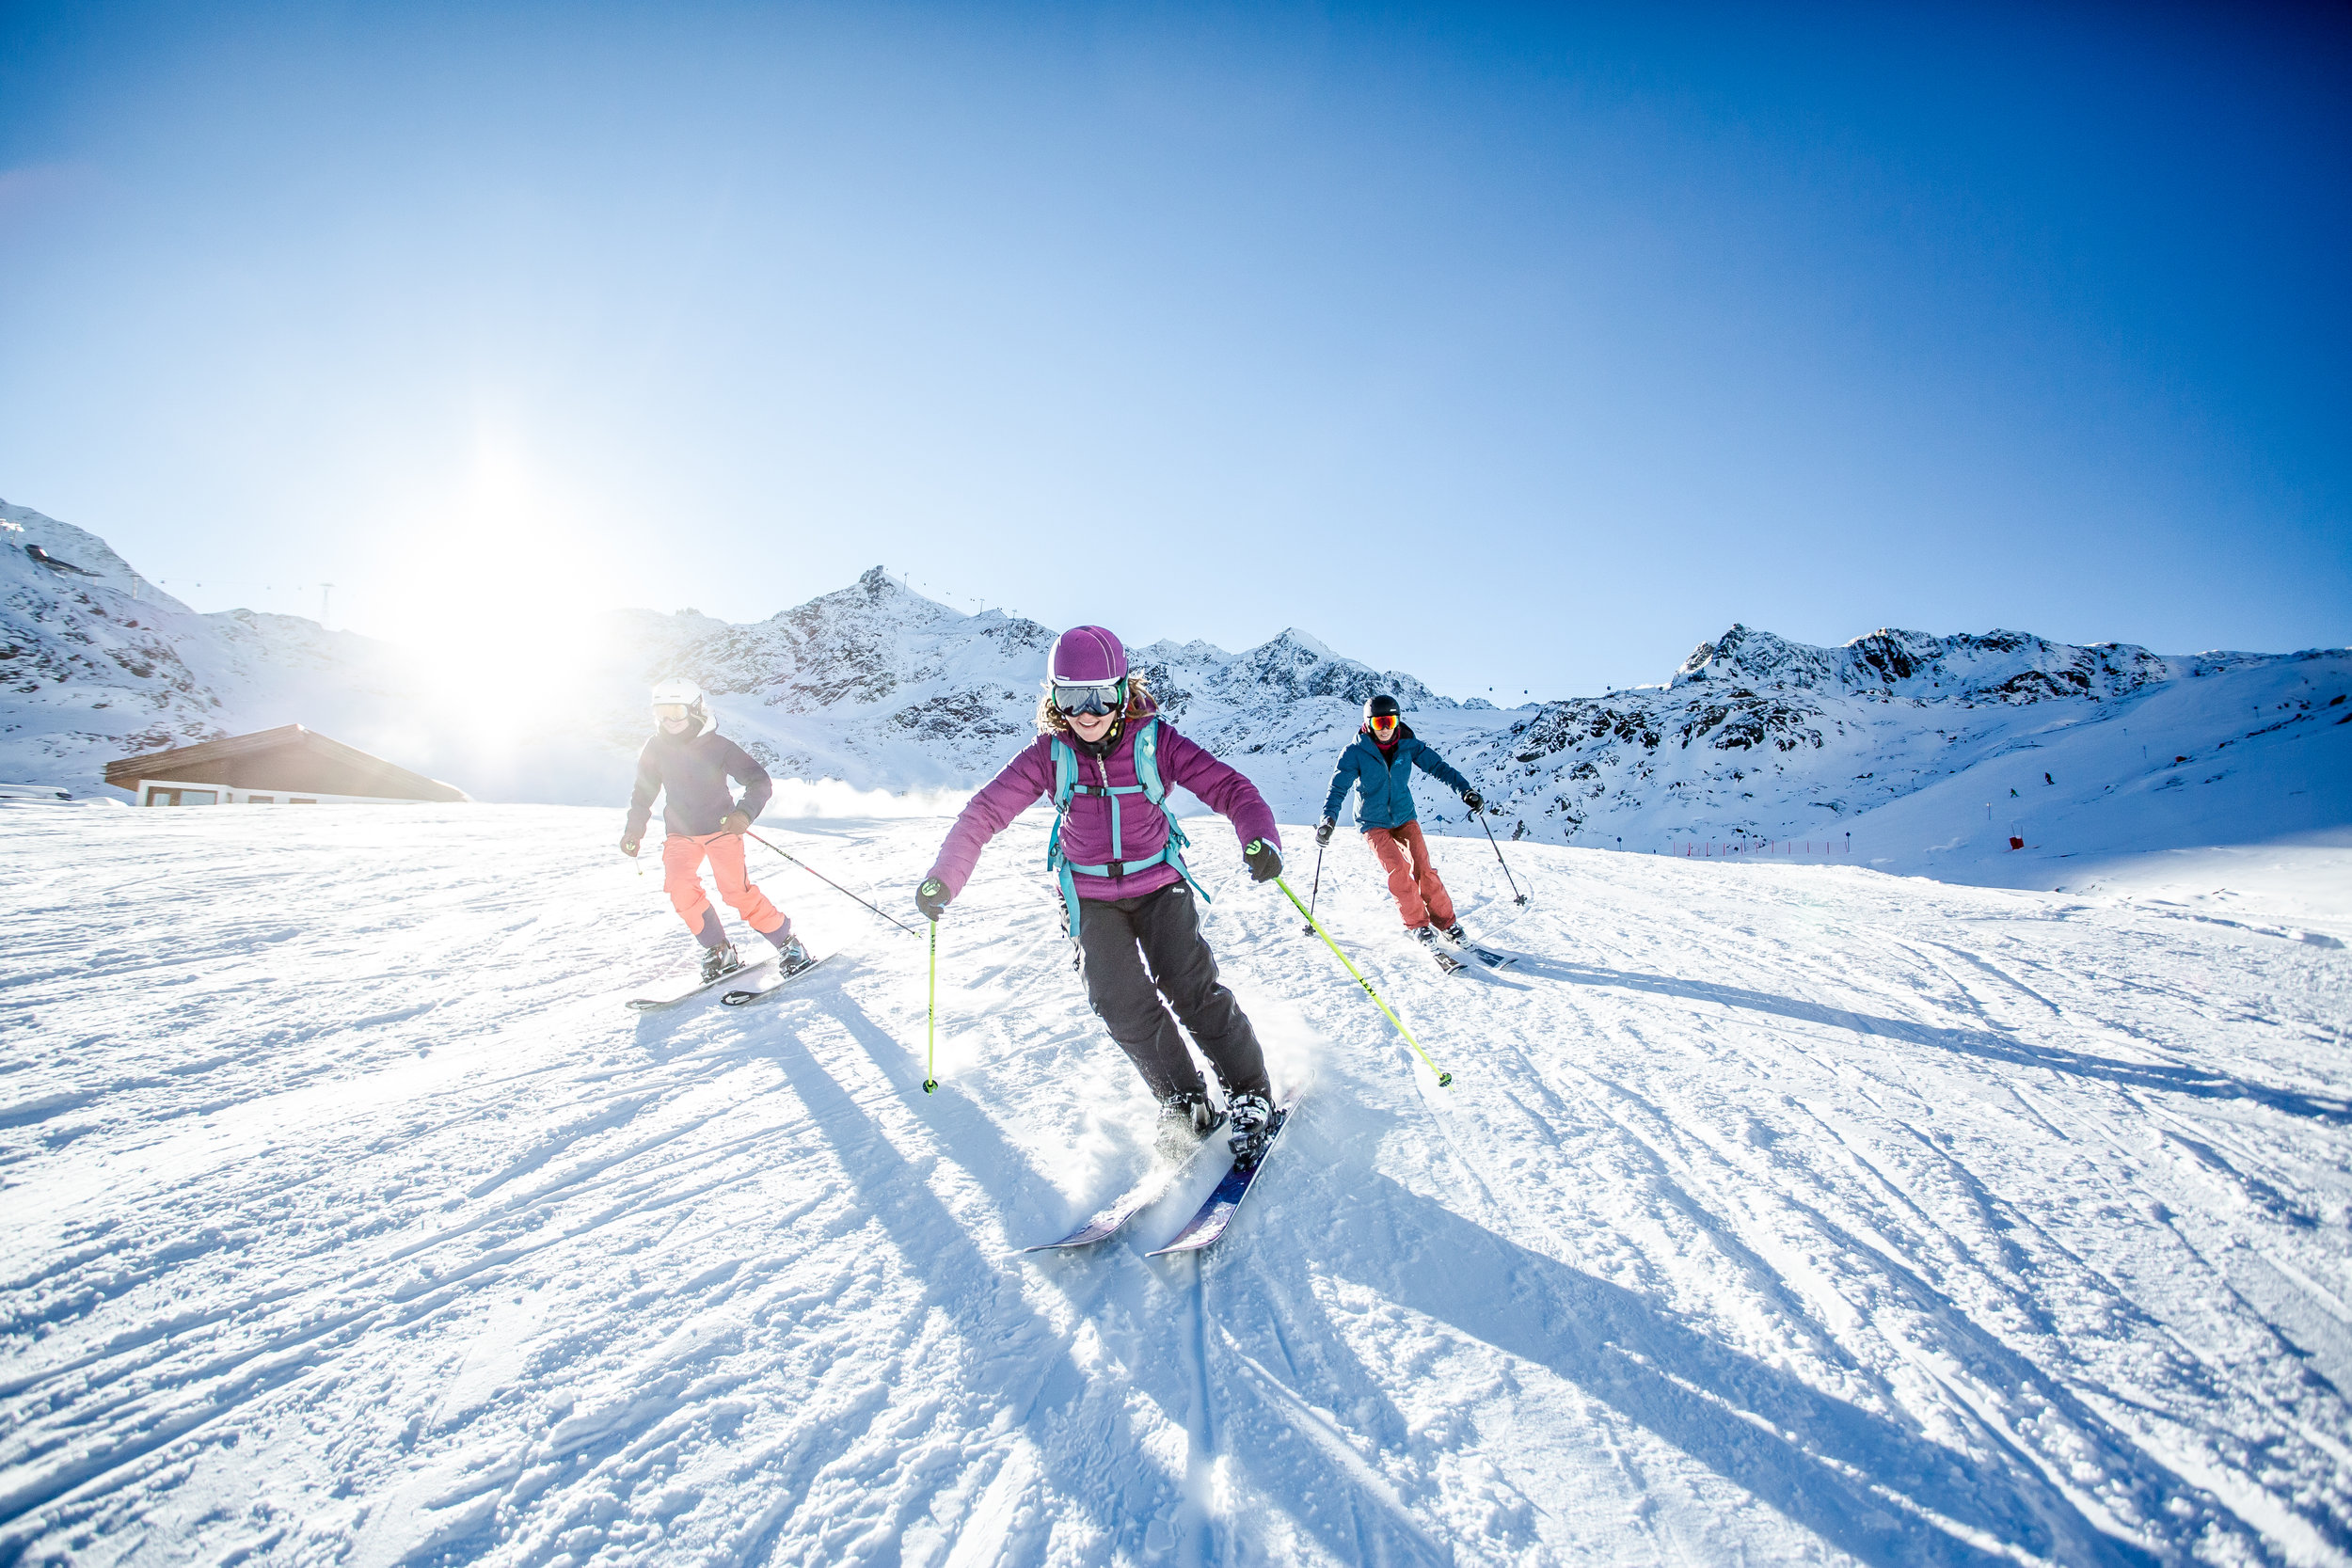 Awareness of movement and improvement of technical skills, make it easier to ski.The beauty of nature supports this experience on- and off-piste. -